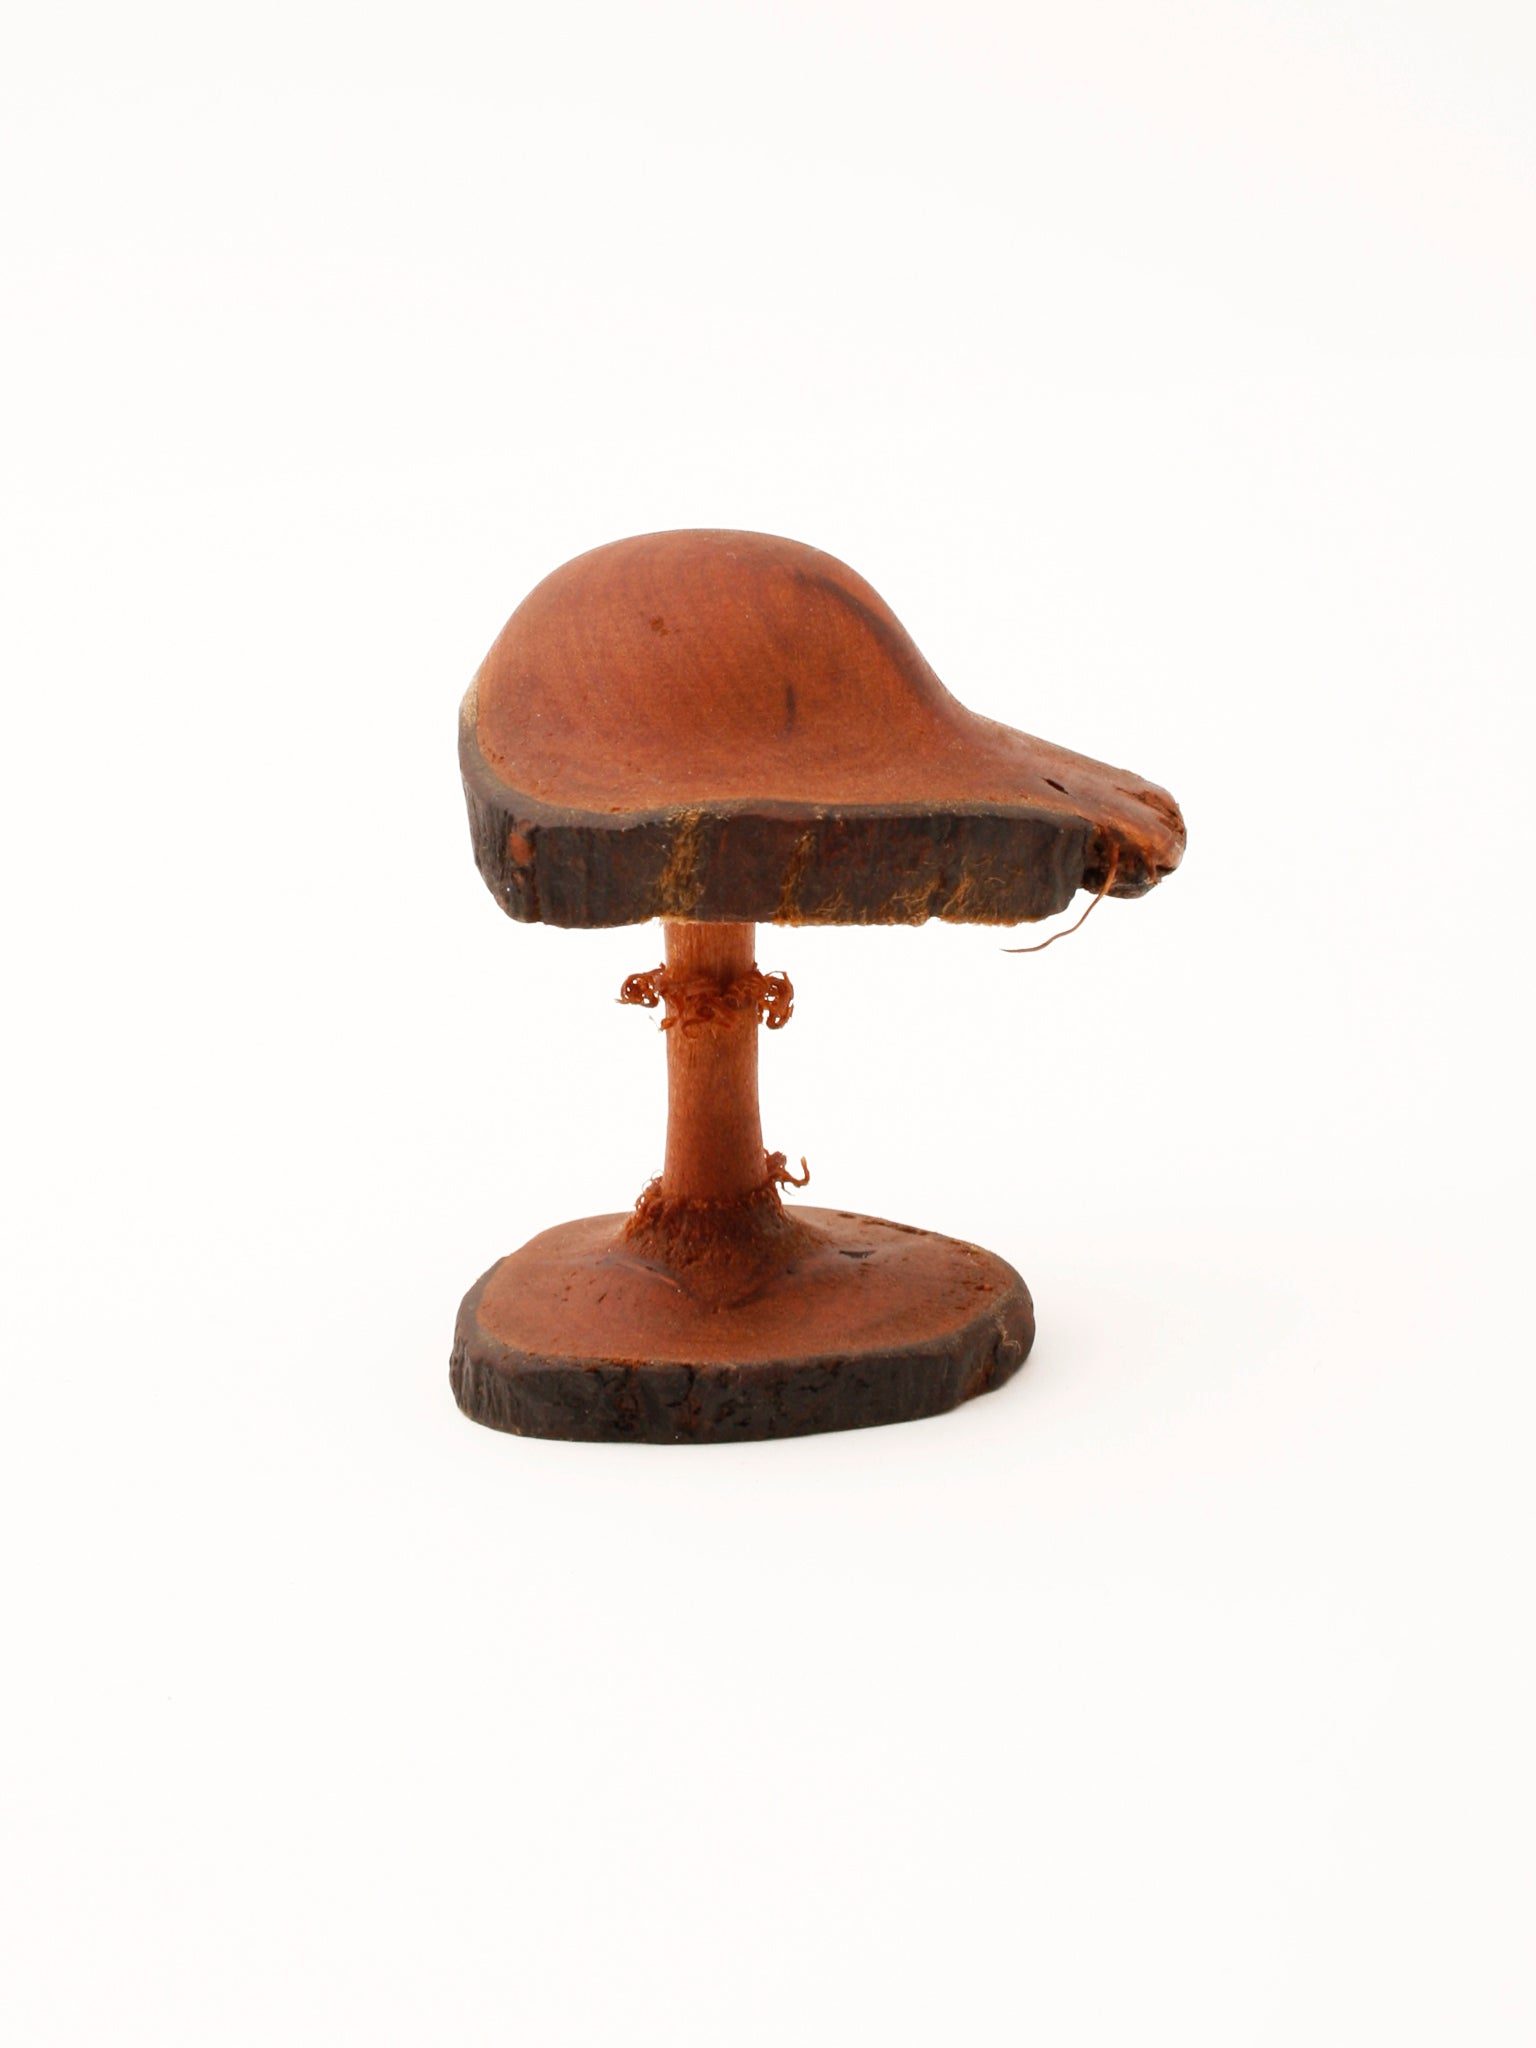 Wooden Mushroom, hand-carved, Shitake